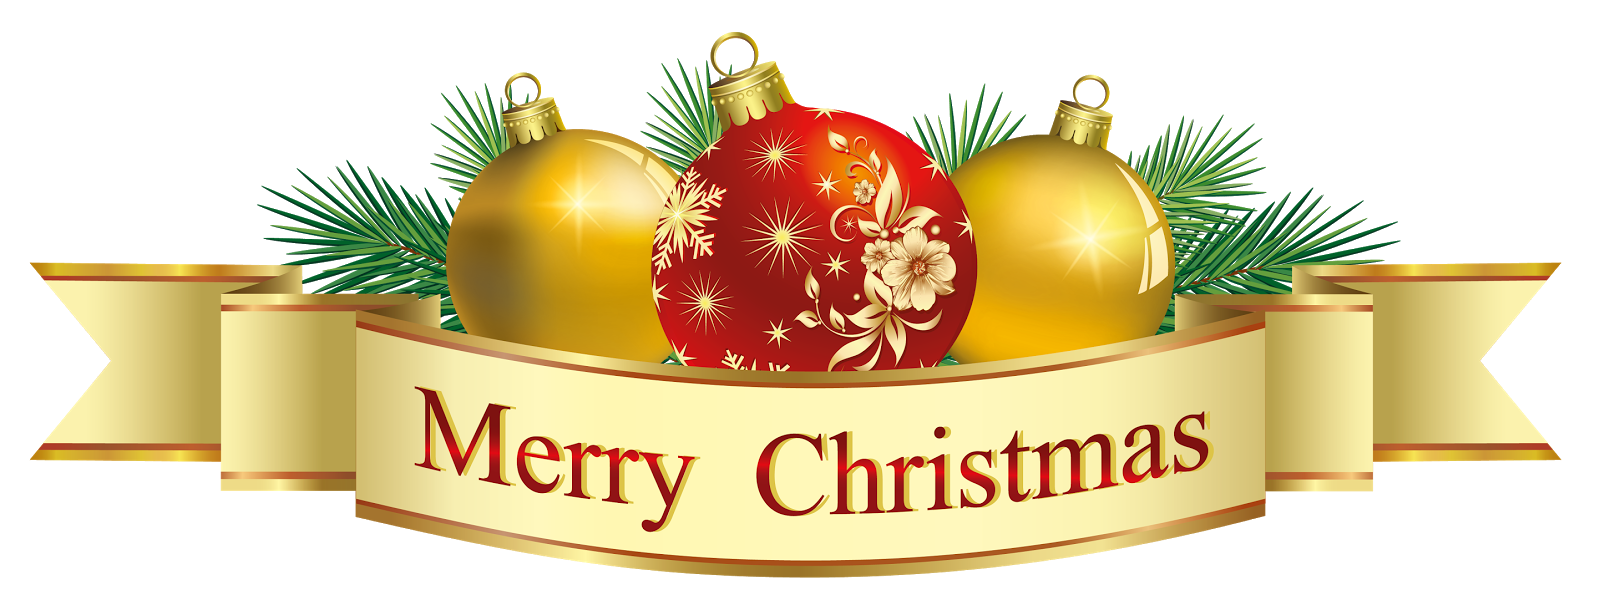 Merry christmas clipart religious jpg royalty free Latest} Top Merry Christmas Clip Art to Decorate Christmas Tree ... jpg royalty free